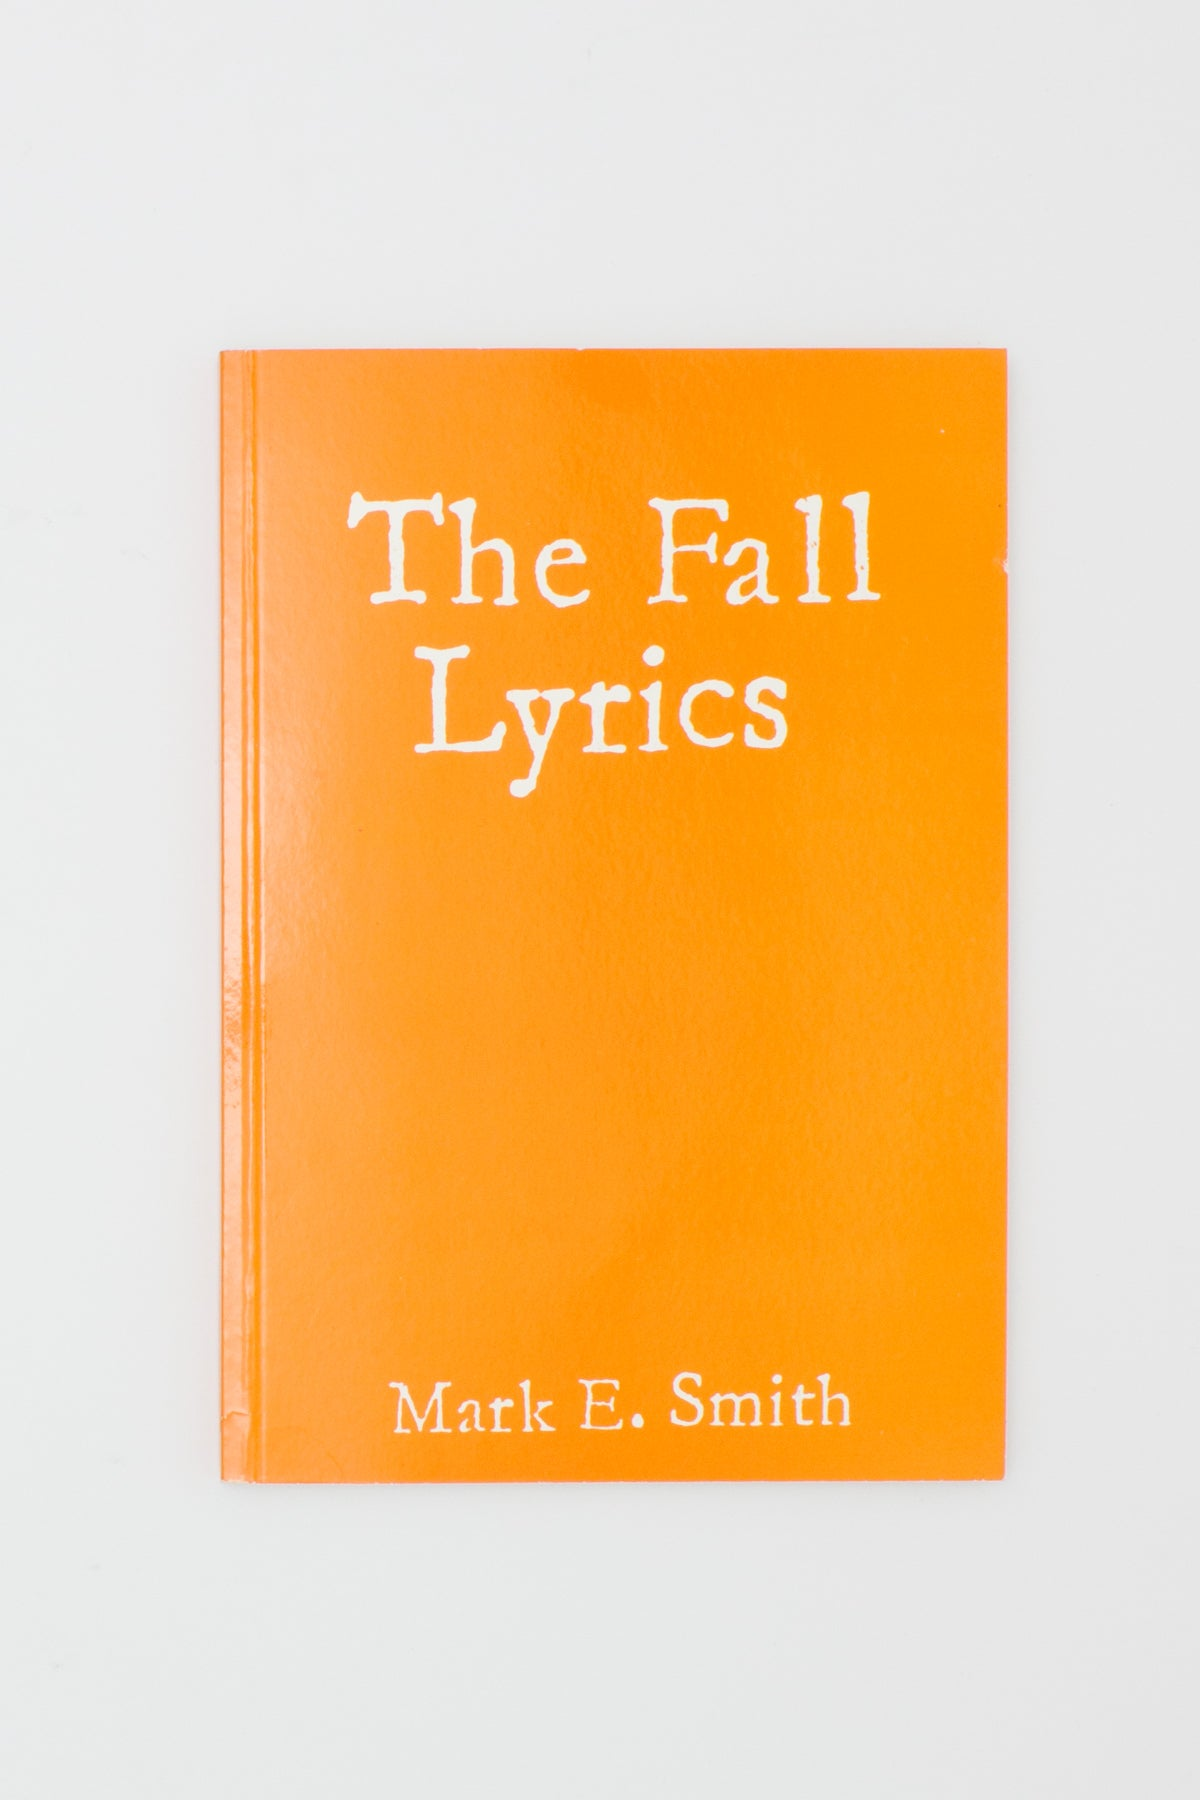 The Fall Lyrics - Mark E. Smith